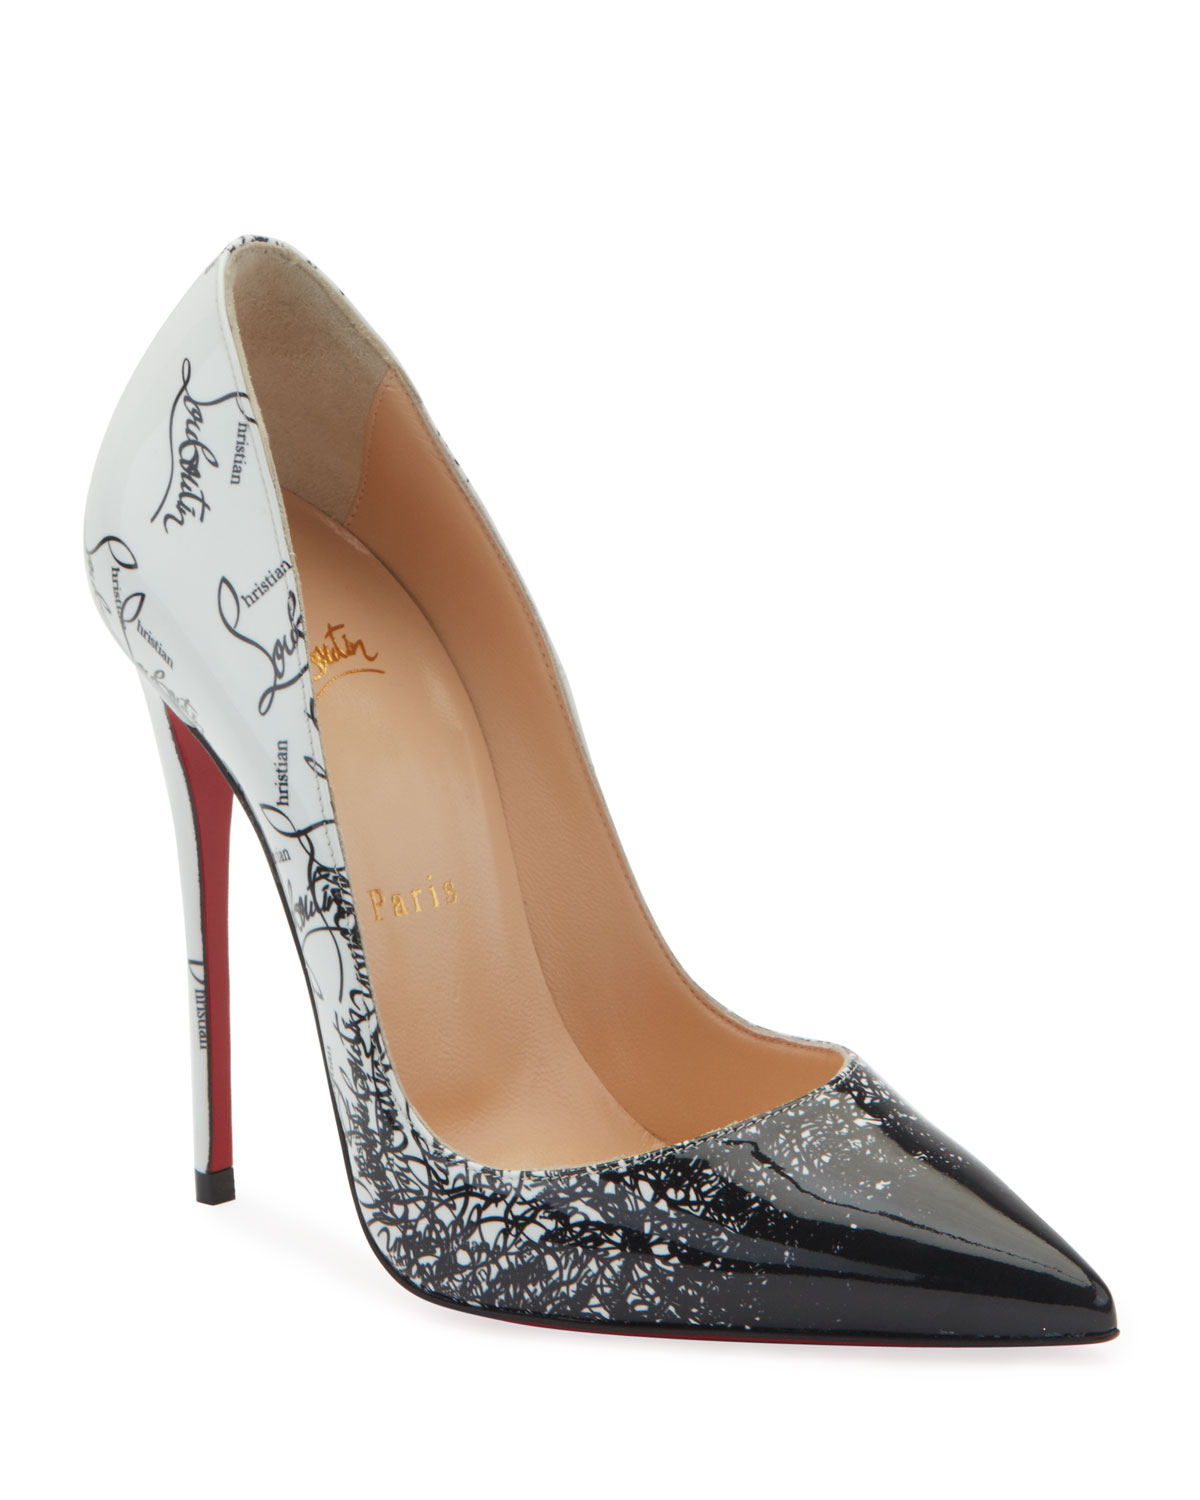 low priced abd98 c3fae So Kate 120mm Patent Degraloubi Red Sole Pumps